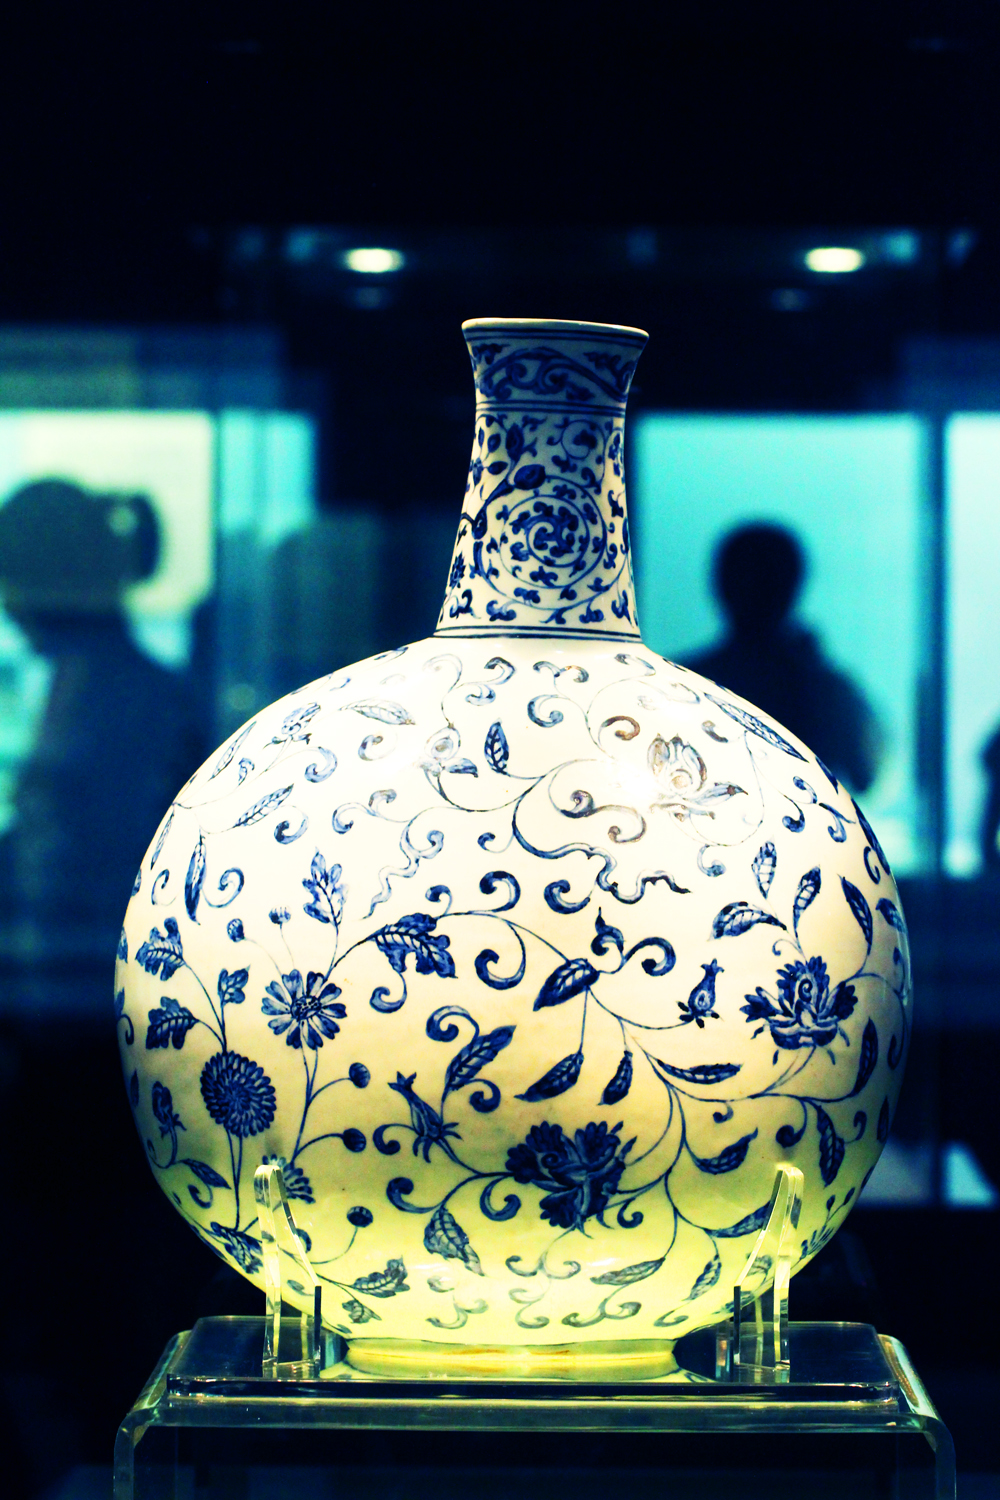 The Porcelain Capital Jingdezhen